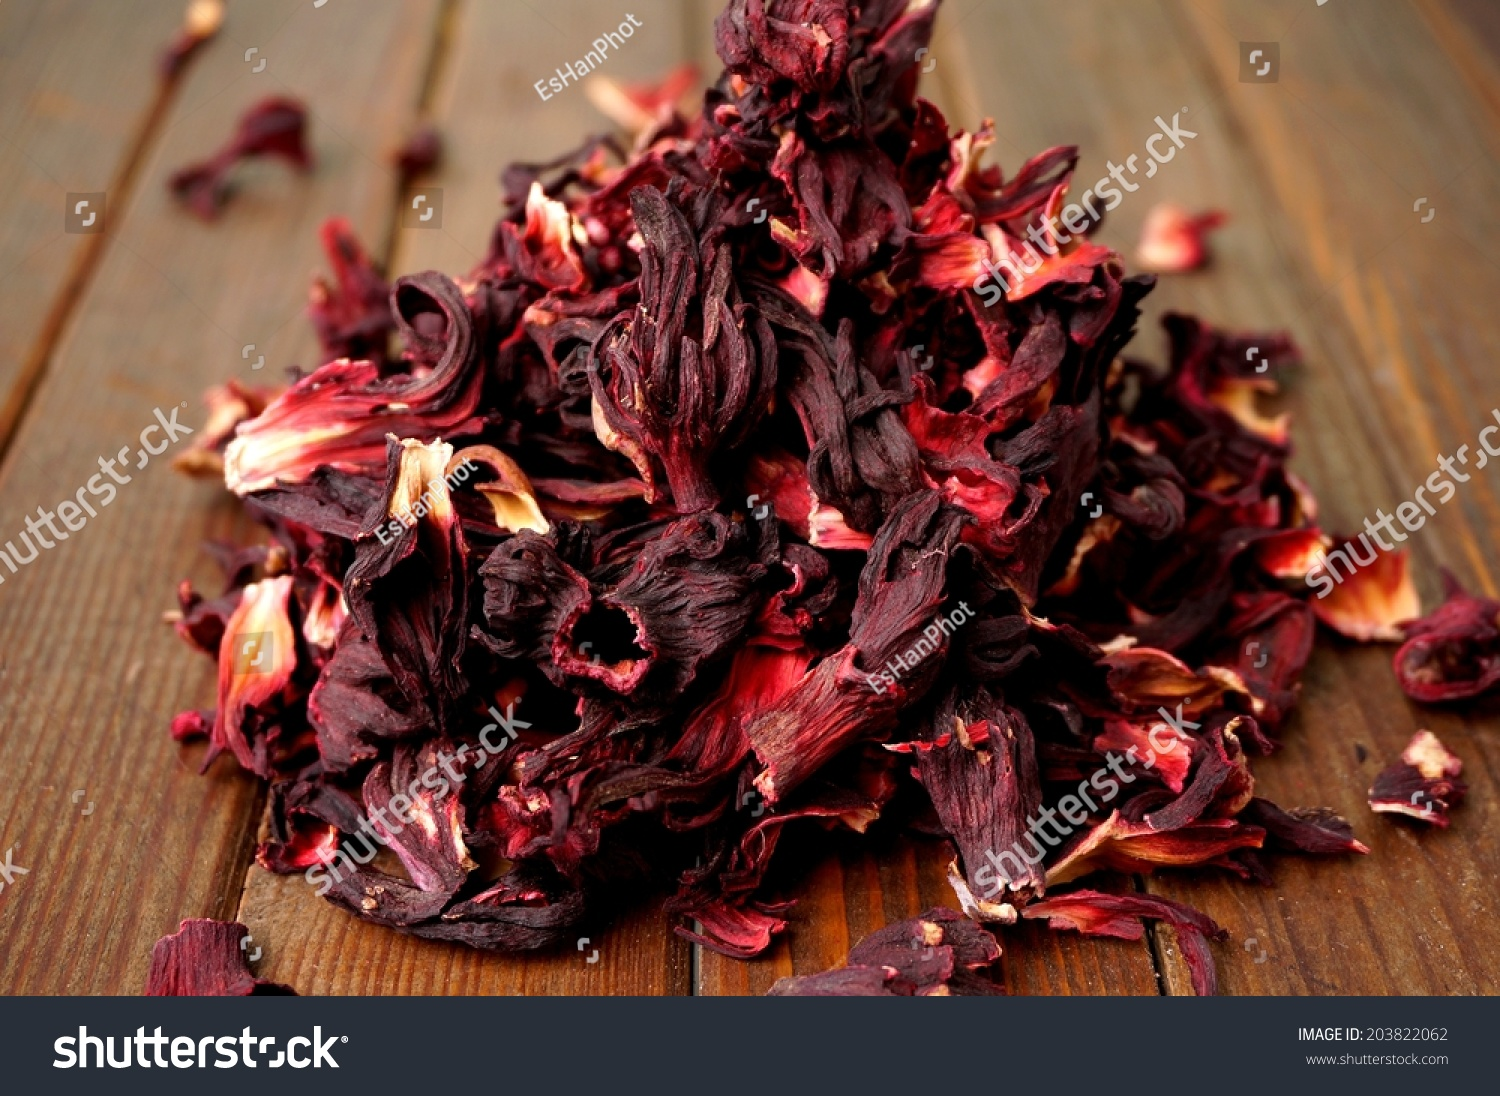 Dried Hibiscus Flower Petals Stock Photo Edit Now 203822062